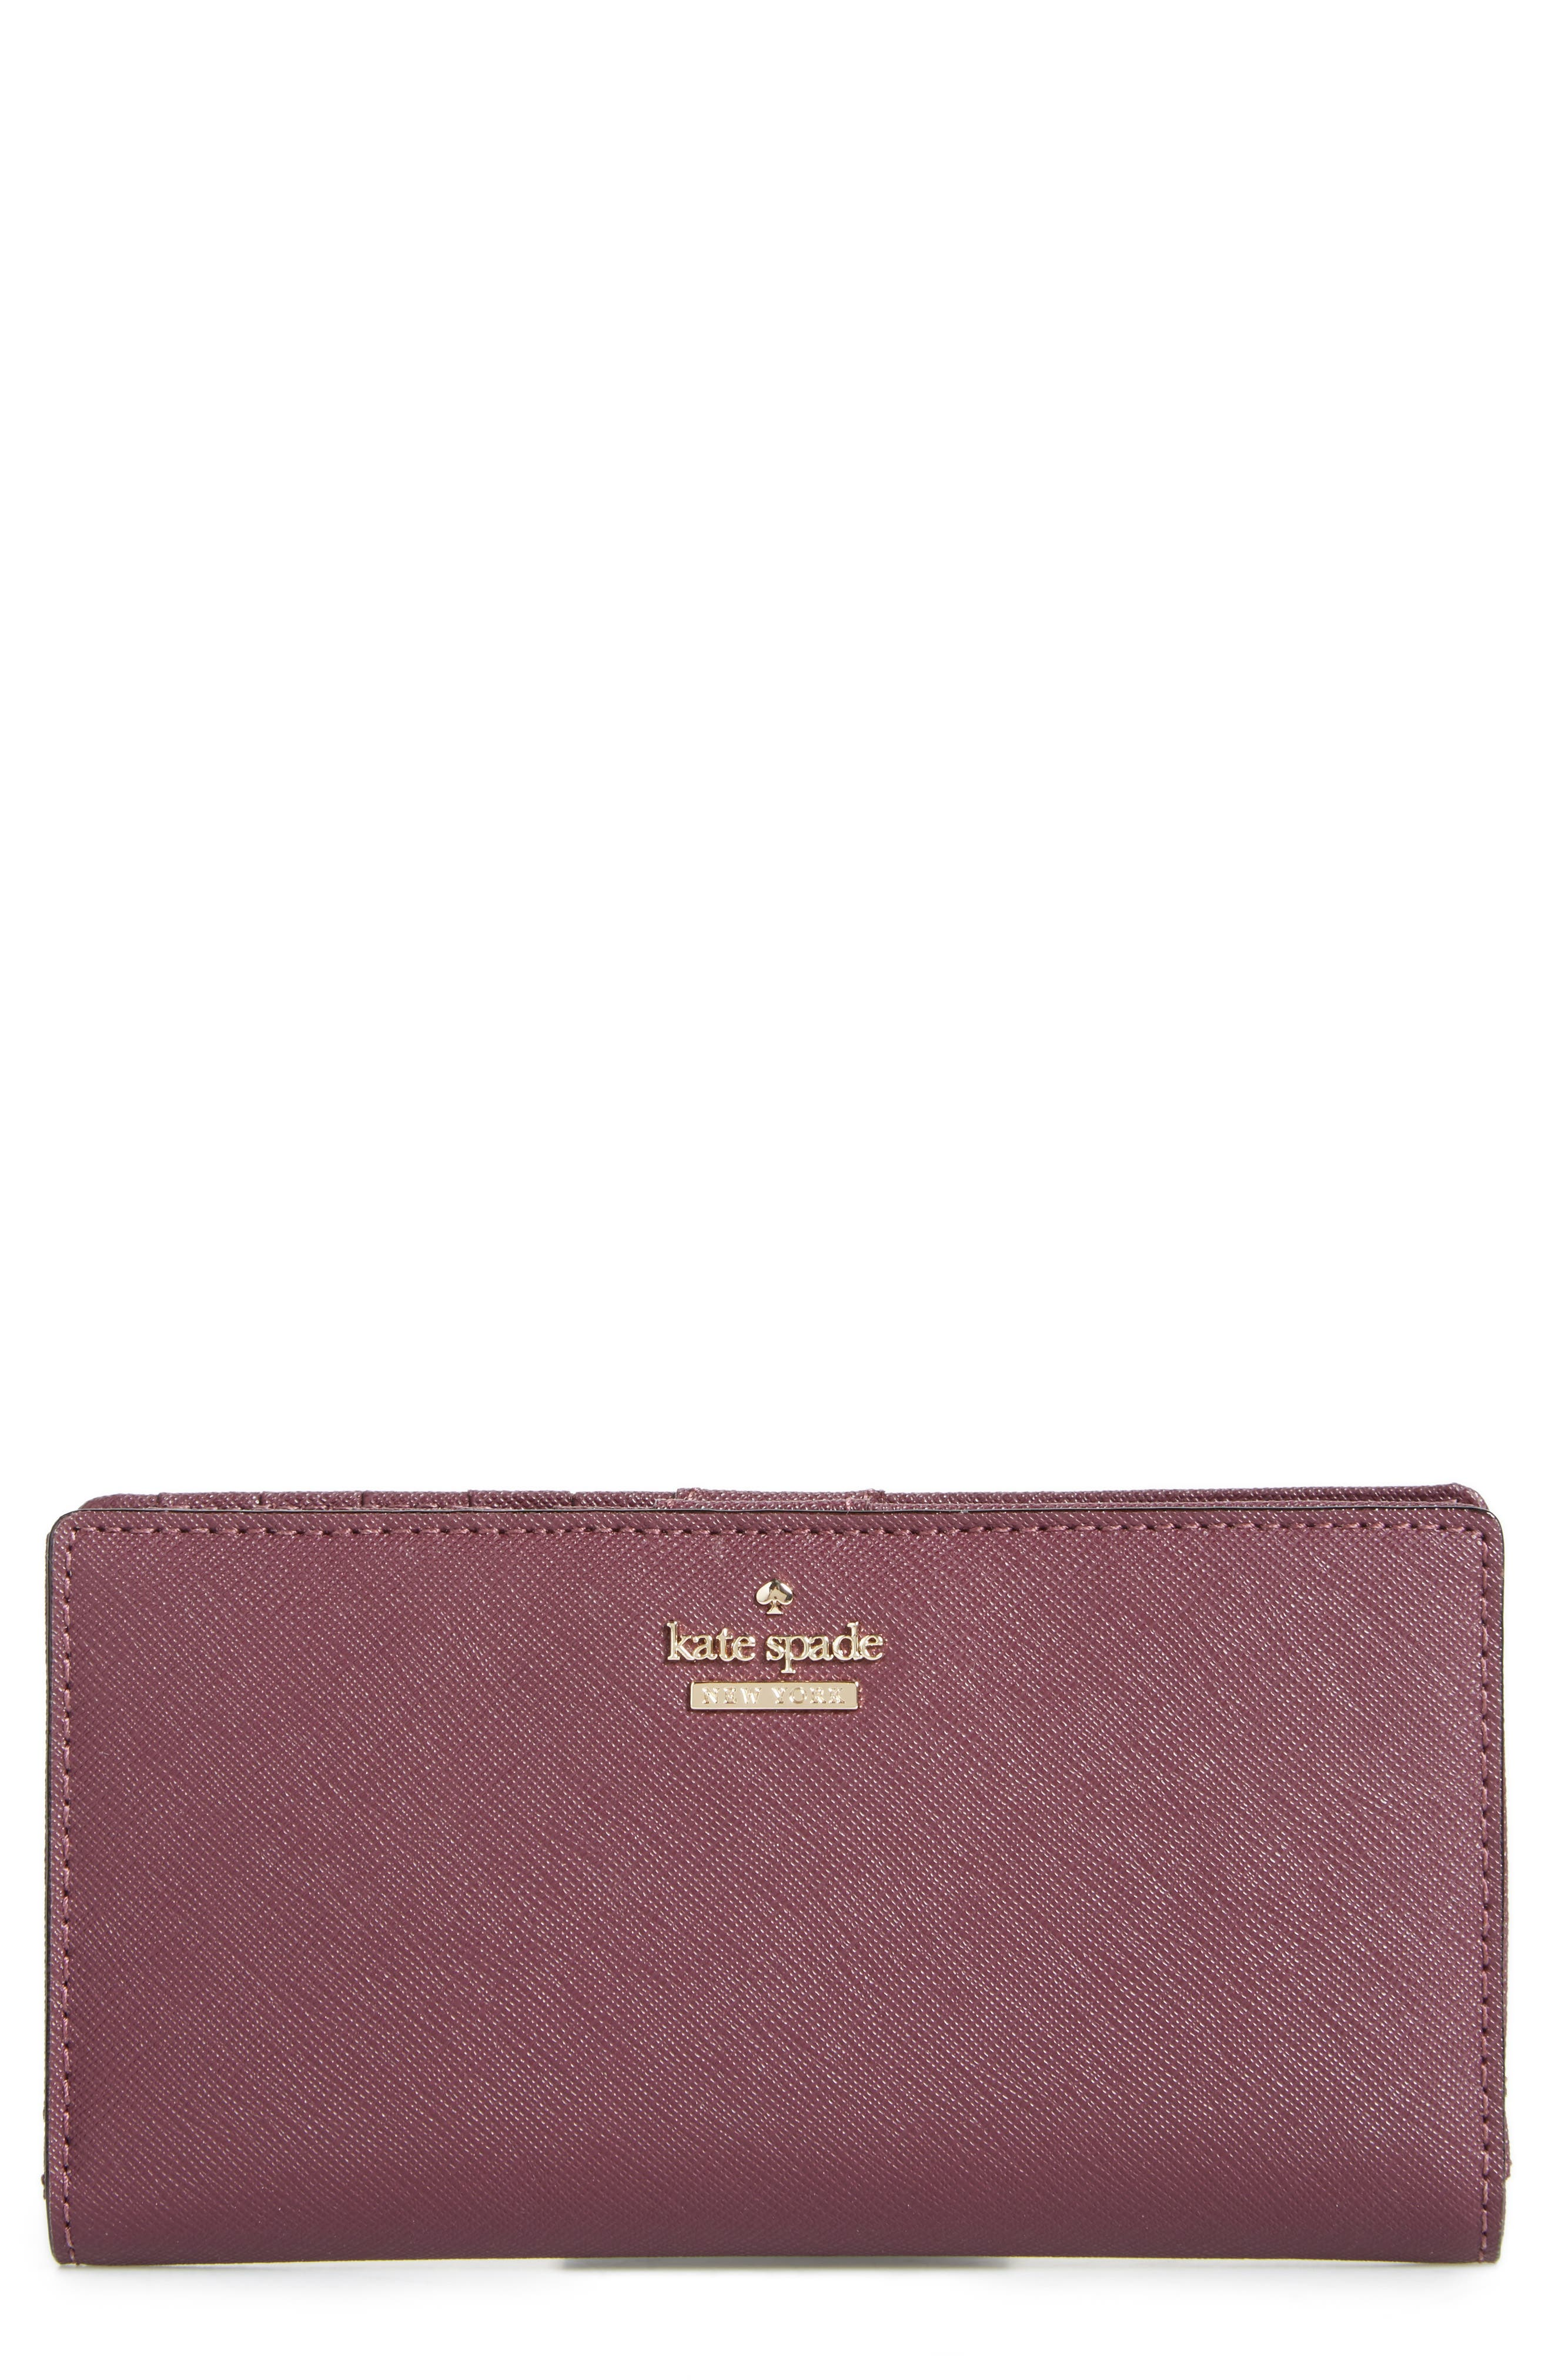 Alternate Image 1 Selected - kate spade new york 'cameron street - stacy' textured leather wallet